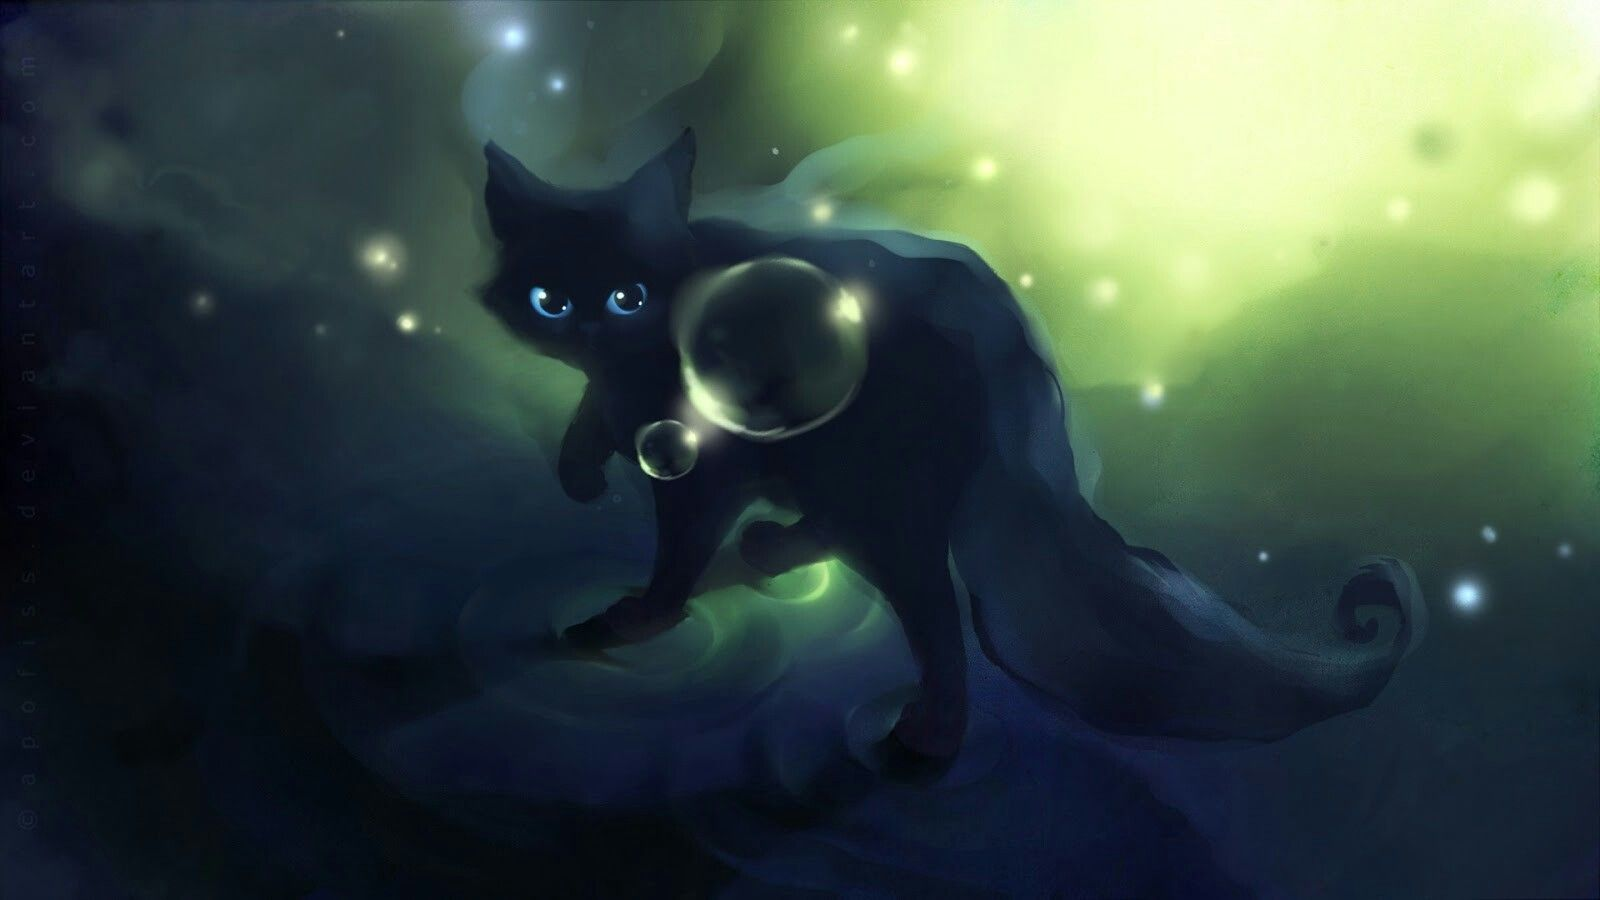 Pin By Kaworu Nagisa On Anime Cute Anime Cat Cat Wallpaper Cat